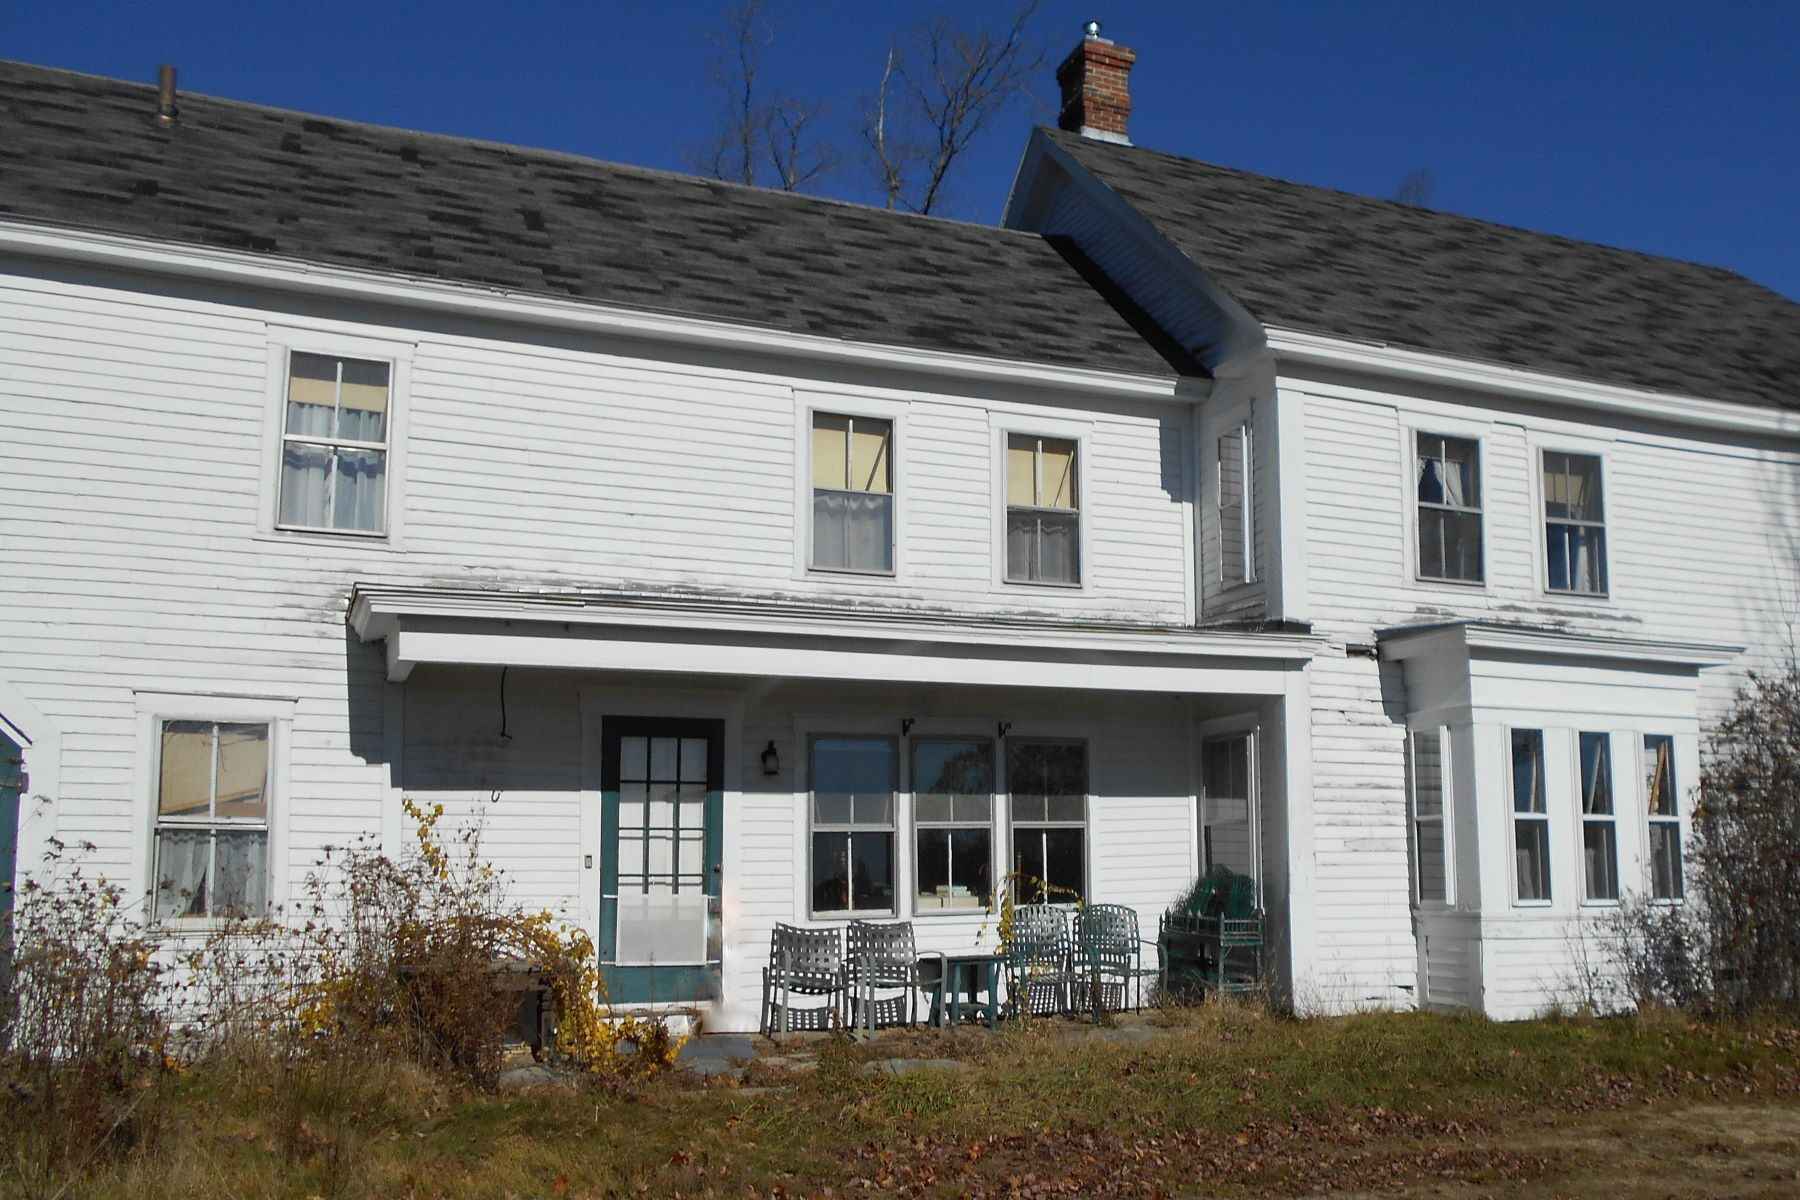 Additional photo for property listing at 81.52 Farm with Mountain Views 112 Sheldon Road Fitchburg, Massachusetts 01420 États-Unis